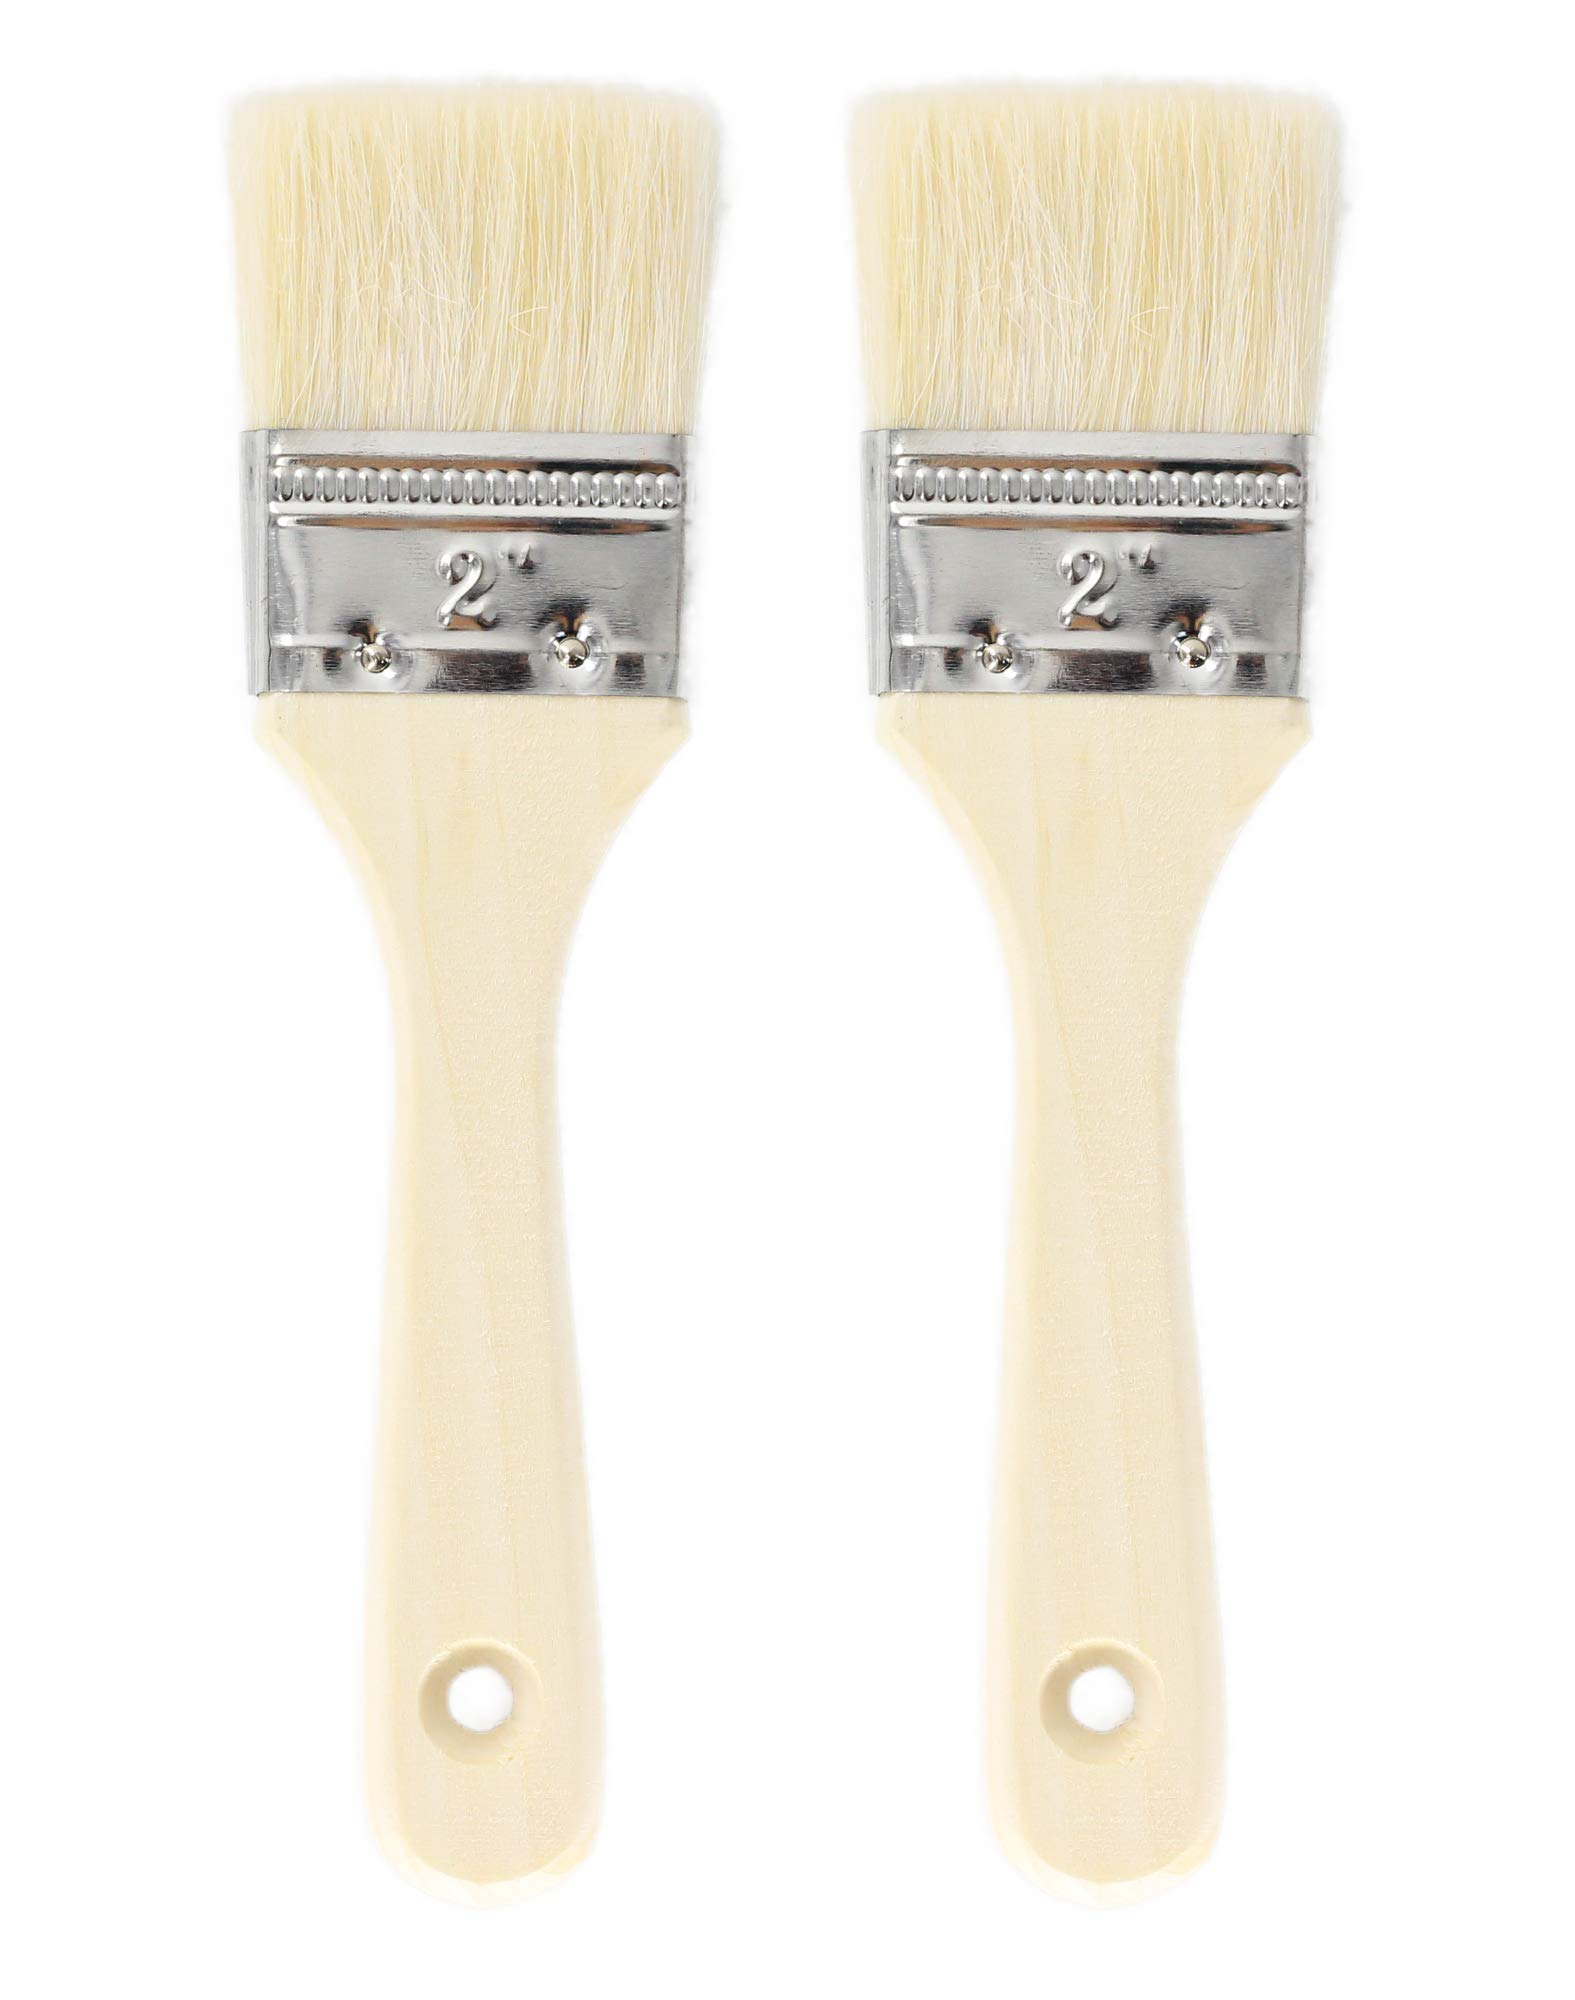 Fiomia Pastry Brush 1 High quality woolen bristle: thick and flexible, safe and eco-friendly, even pasting, beautiful texture, durable Full wooden handle: streamlined design and comfort grip, easy to hang and save space High efficiency: absorbent, save time and effort